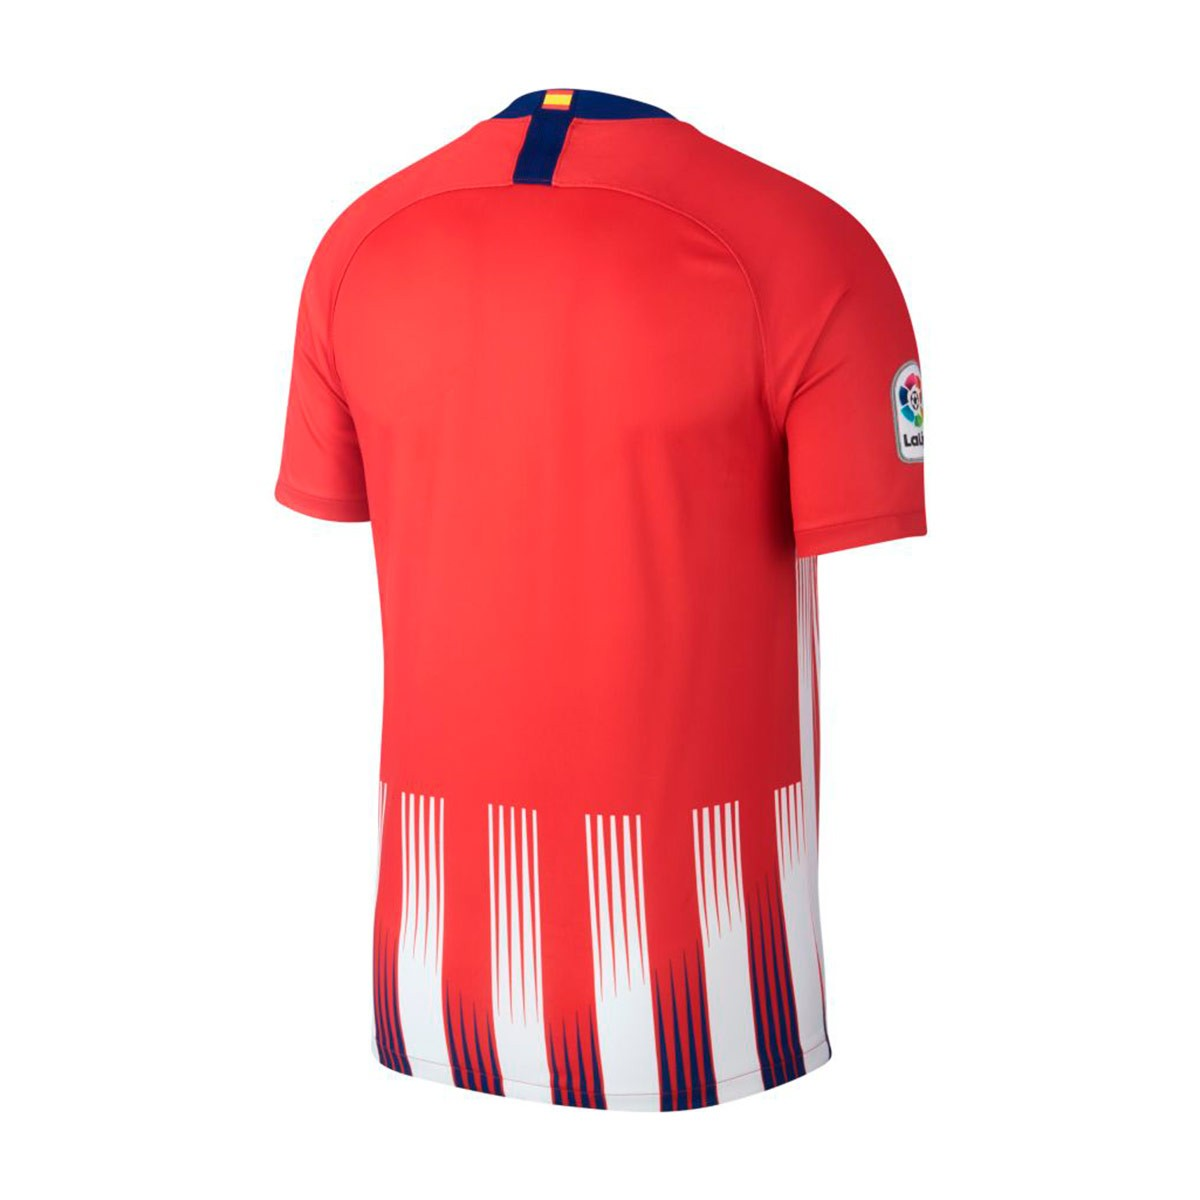 Nike Atletico Madrid Season 2018-2019 Home Soccer Jersey Brand New Red White